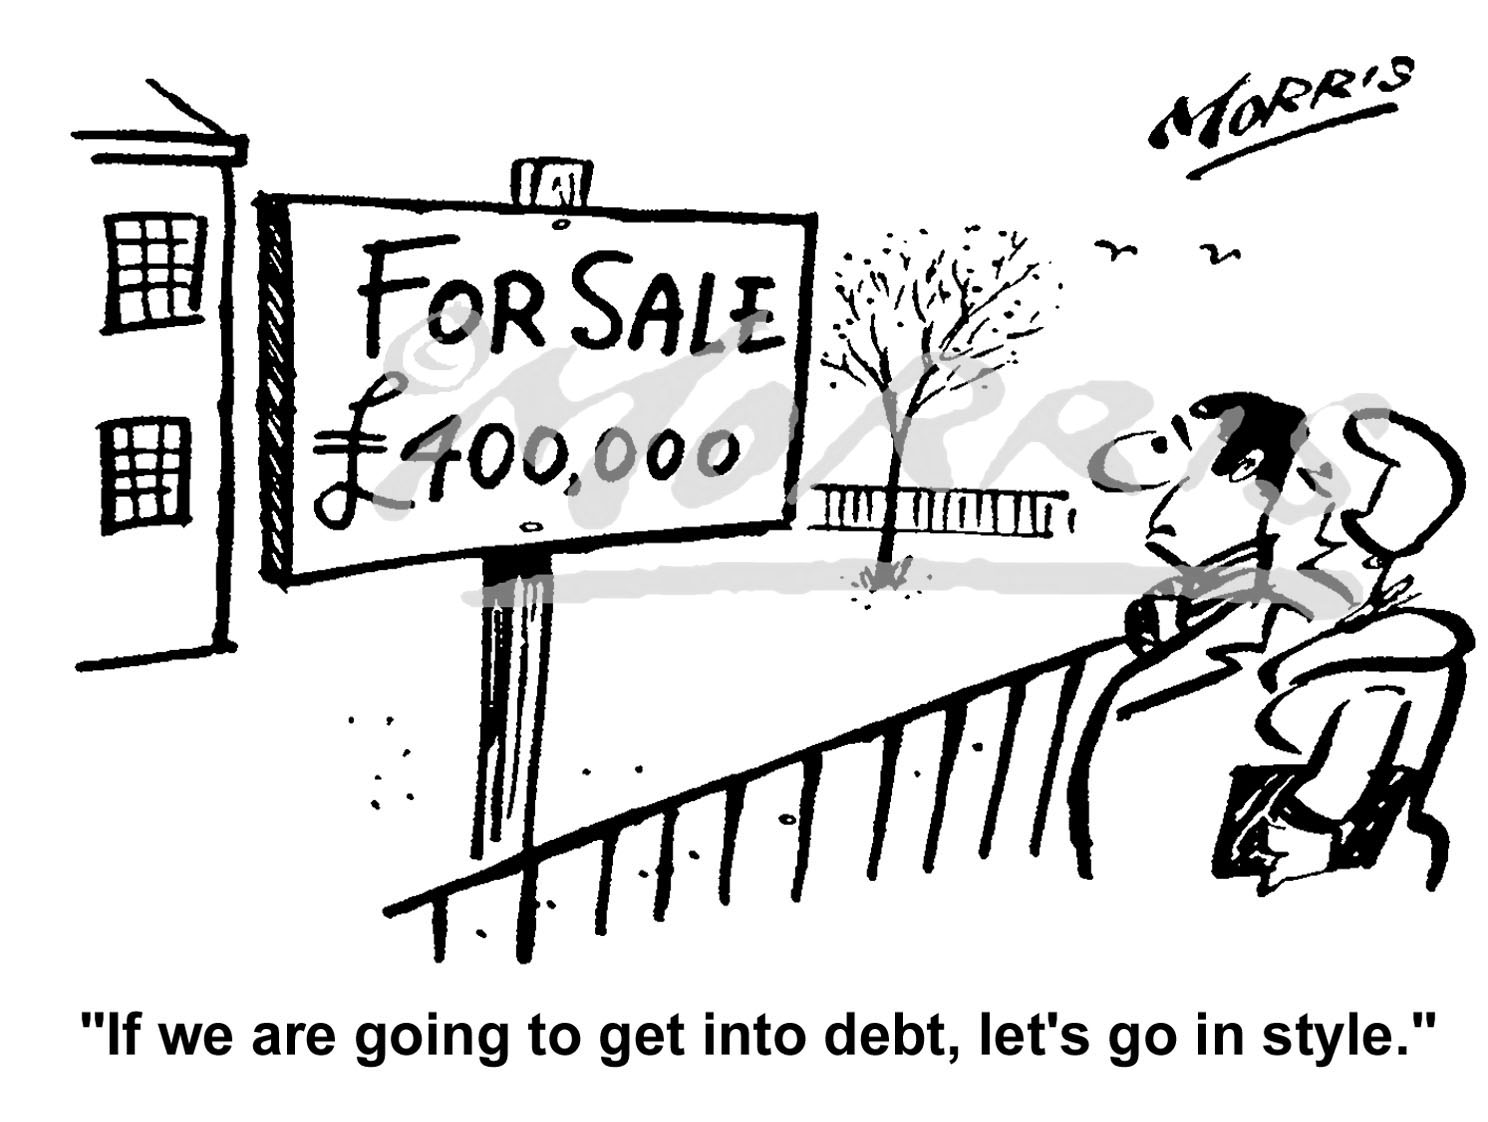 House property sale cartoon – Ref: 5075bw